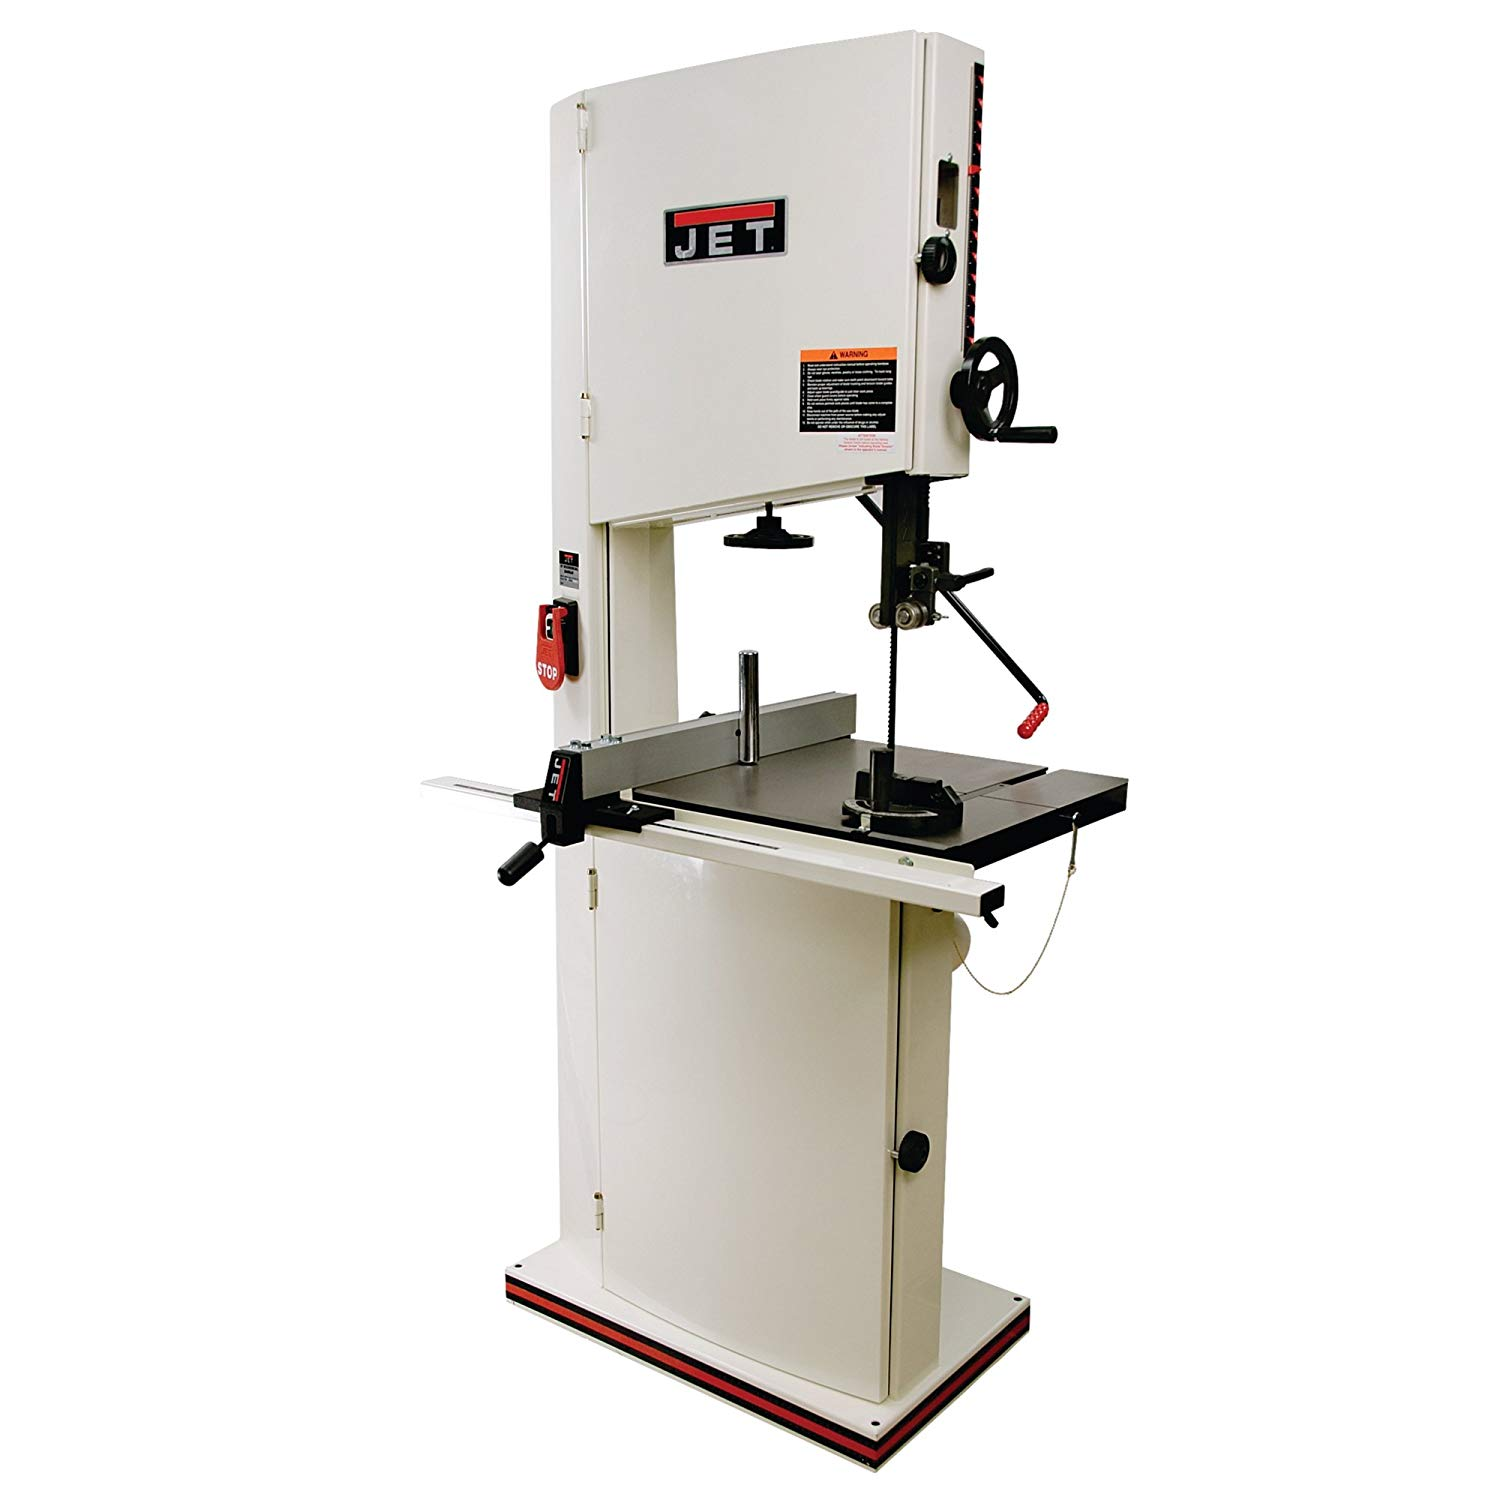 "Jet 15"" 1-¾ HP Woodworking Bandsaw.jpg"